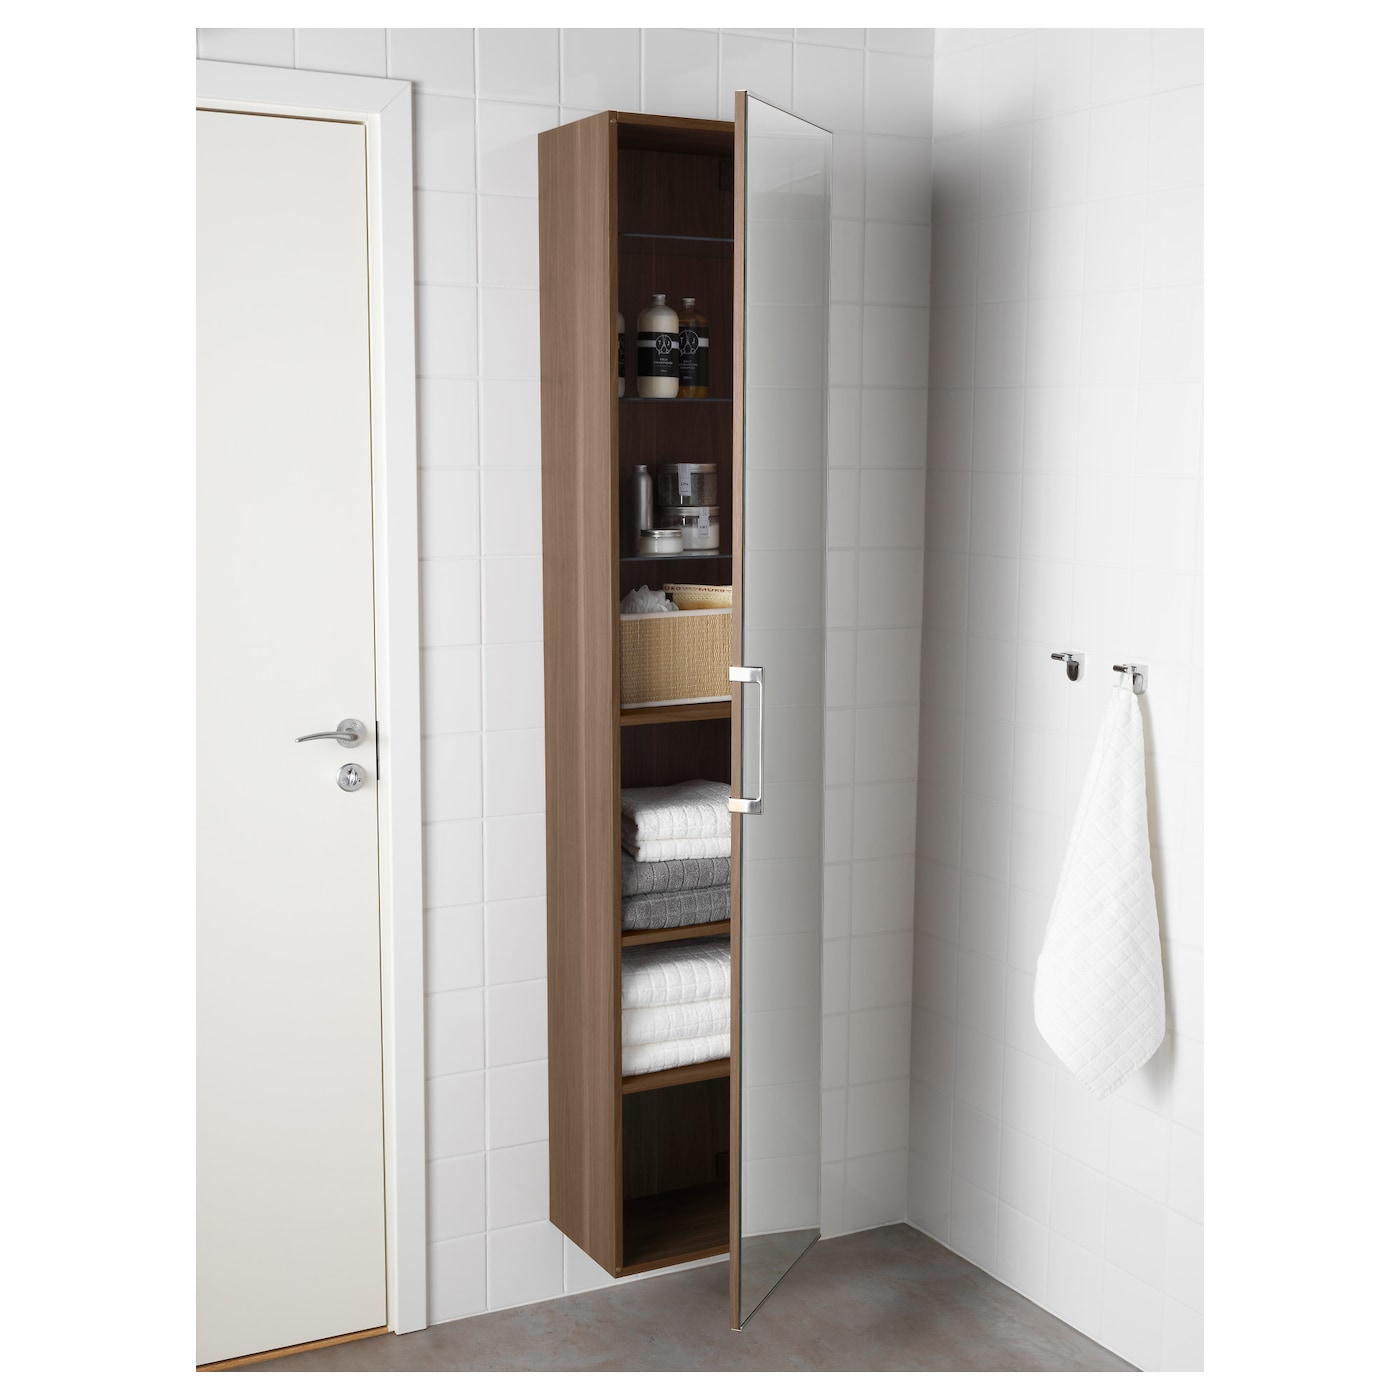 bathroom mirror cabinets ikea godmorgon high cabinet with mirror door walnut effect 40 x 11588